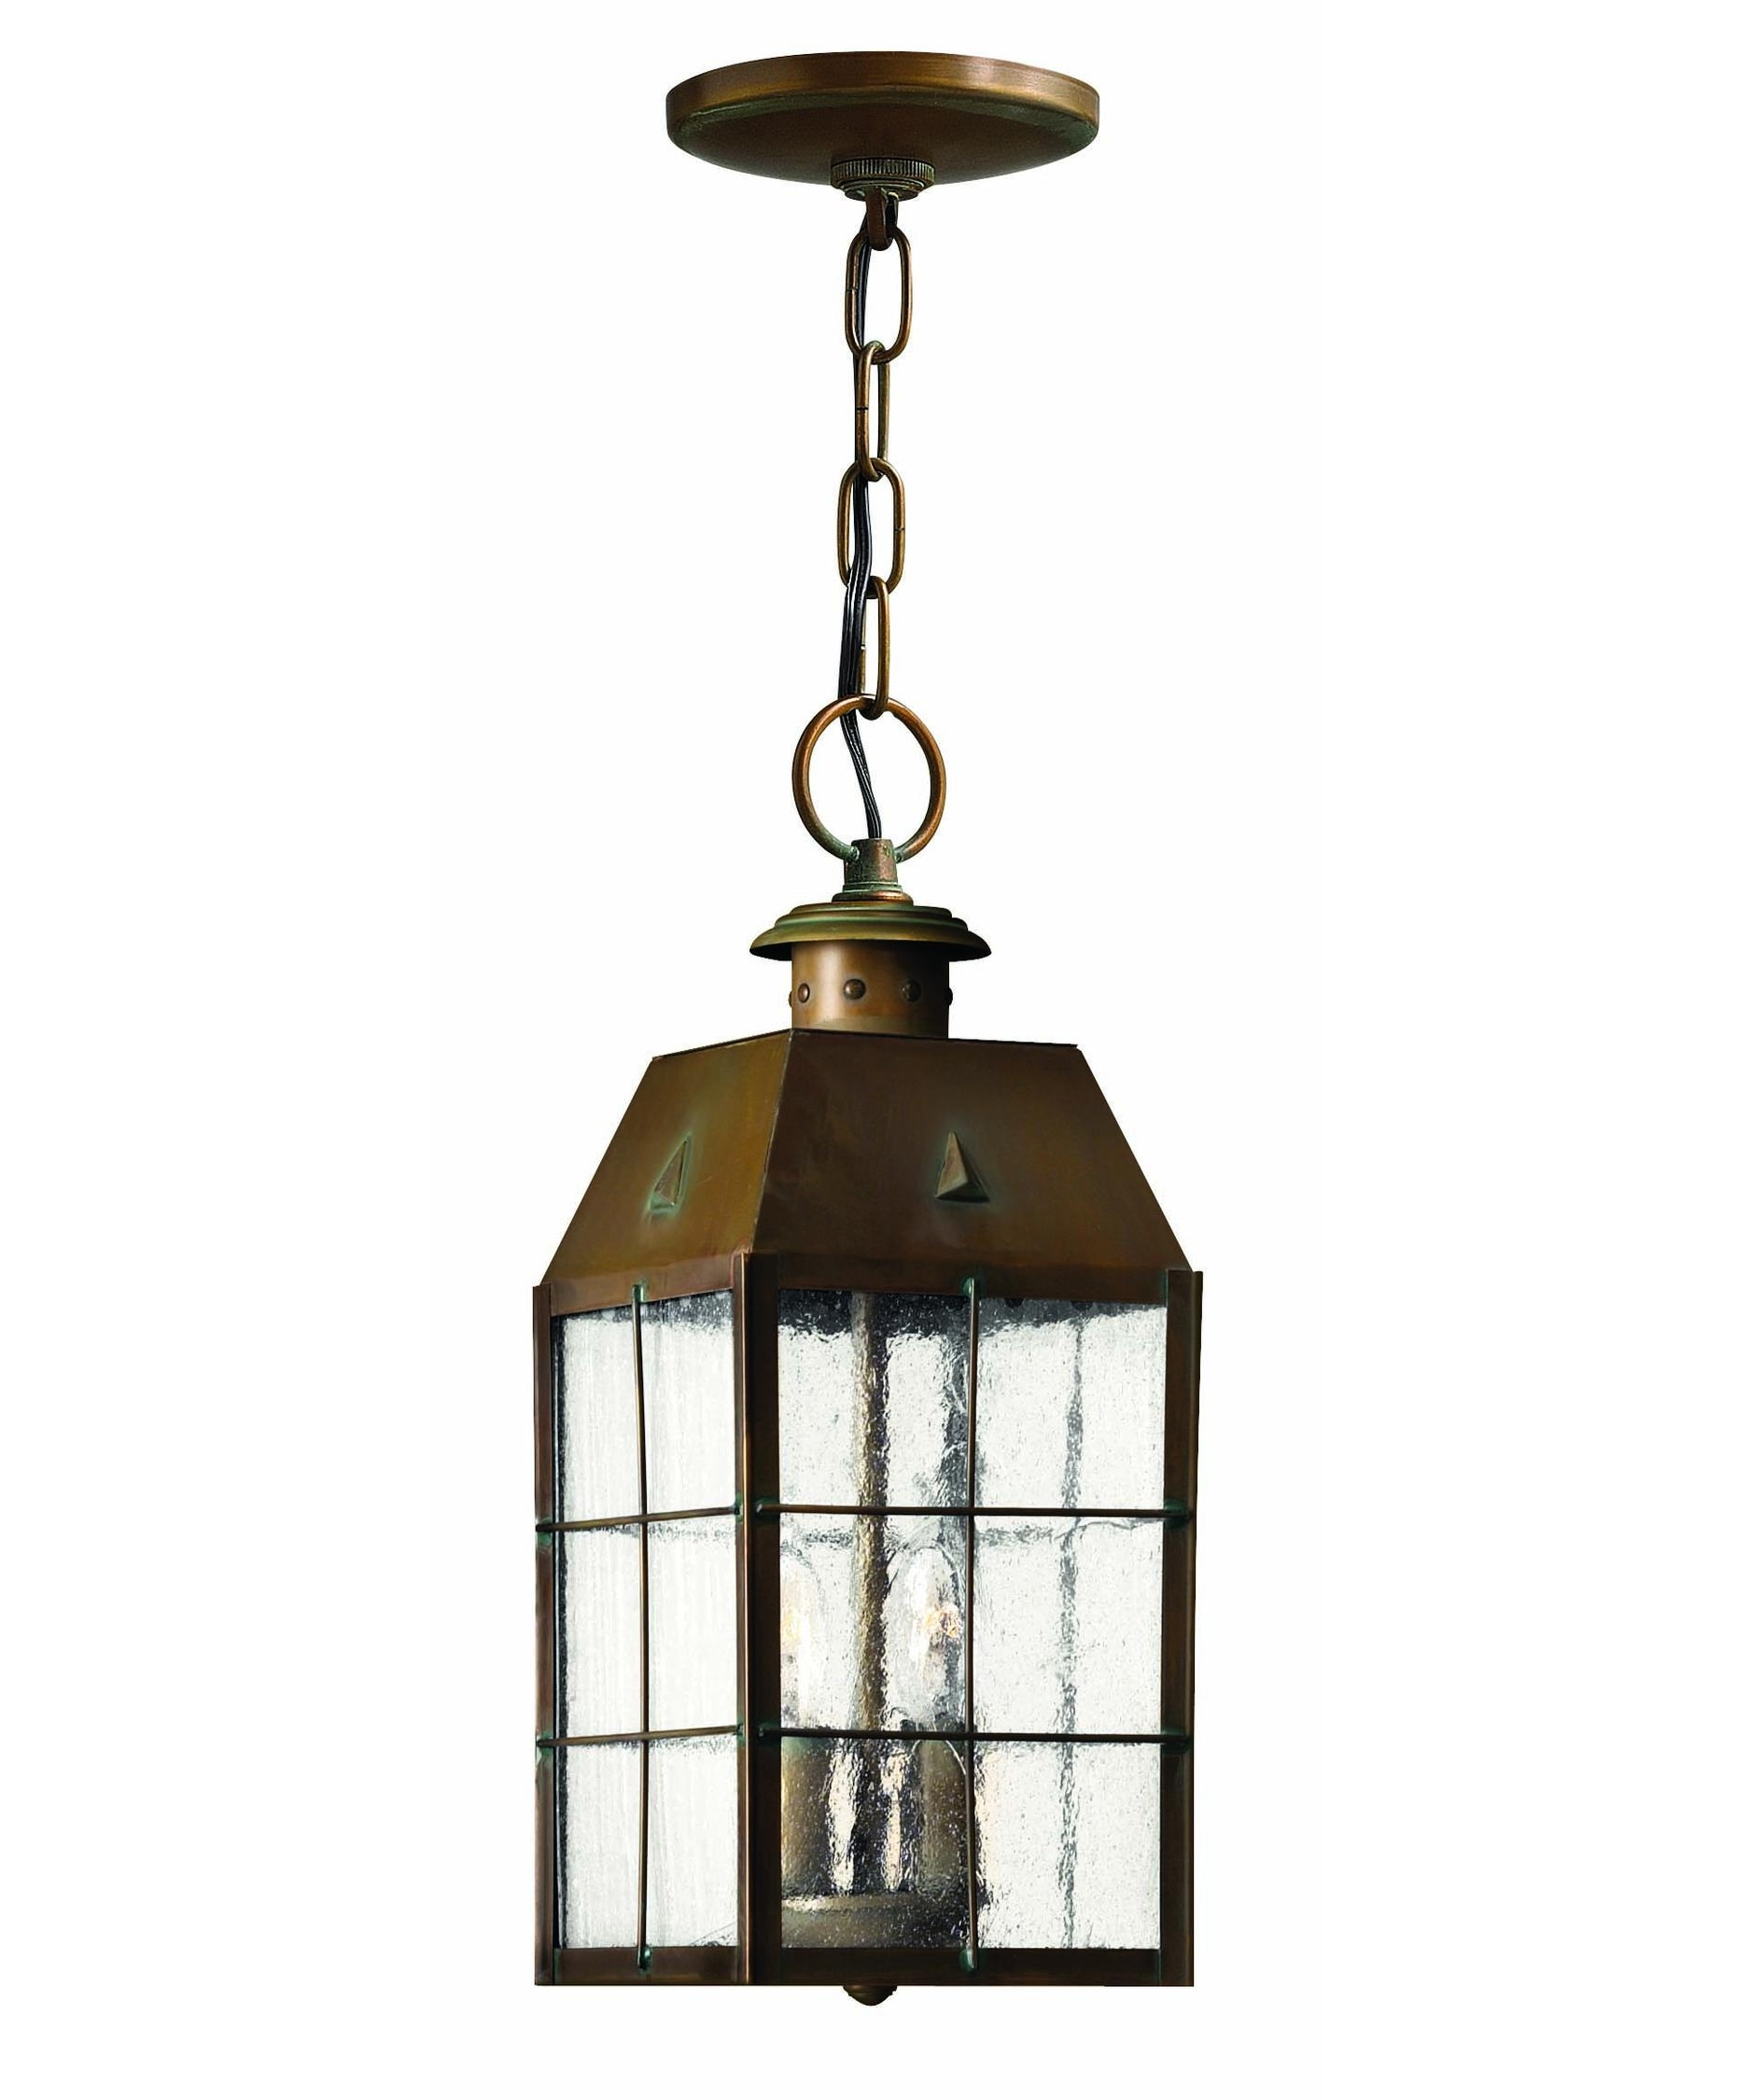 Hinkley Lighting 2372 Nantucket 6 Inch Wide 2 Light Outdoor Hanging For Most Up To Date Outdoor Hanging Lantern Lights (View 13 of 20)